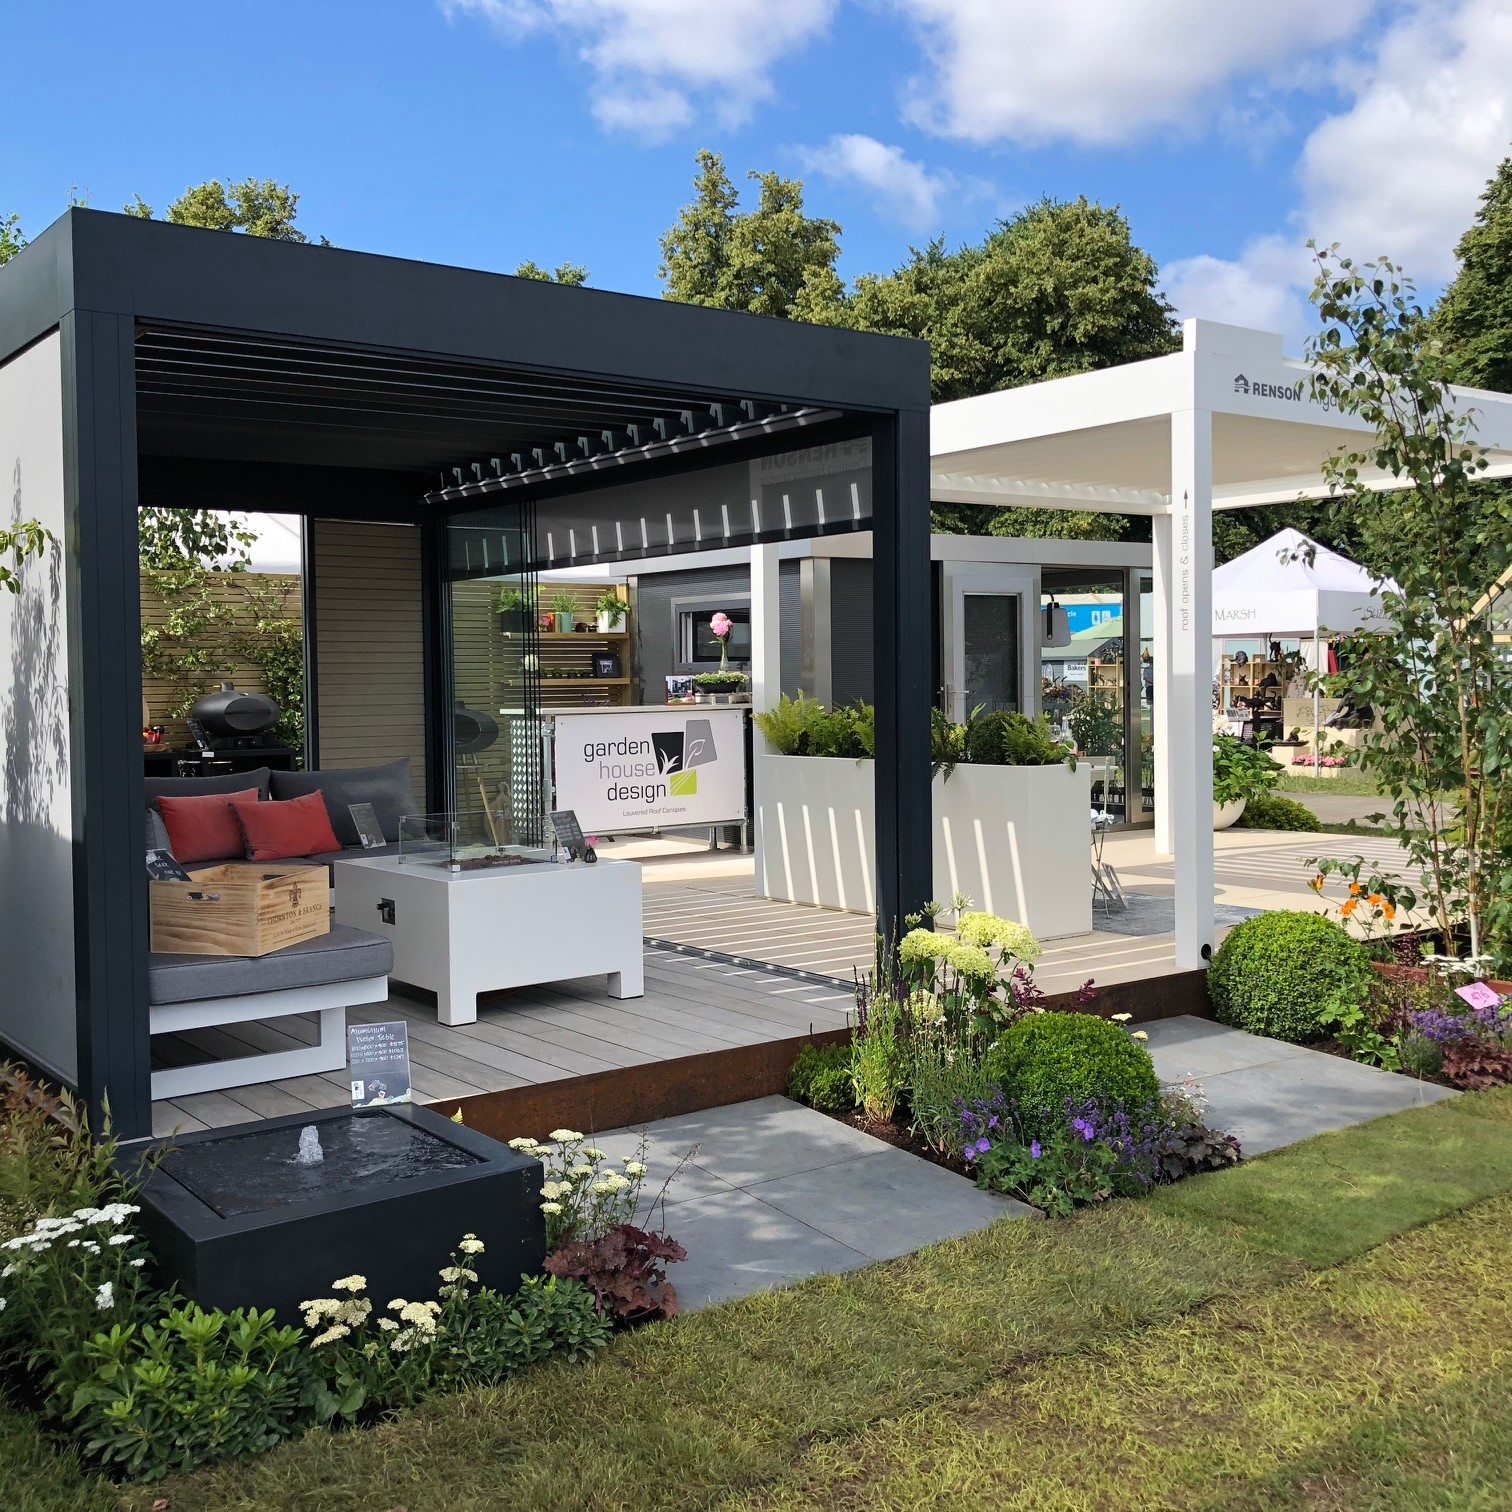 Hampton Court Flower Show Exhibition Trade Stand 2019